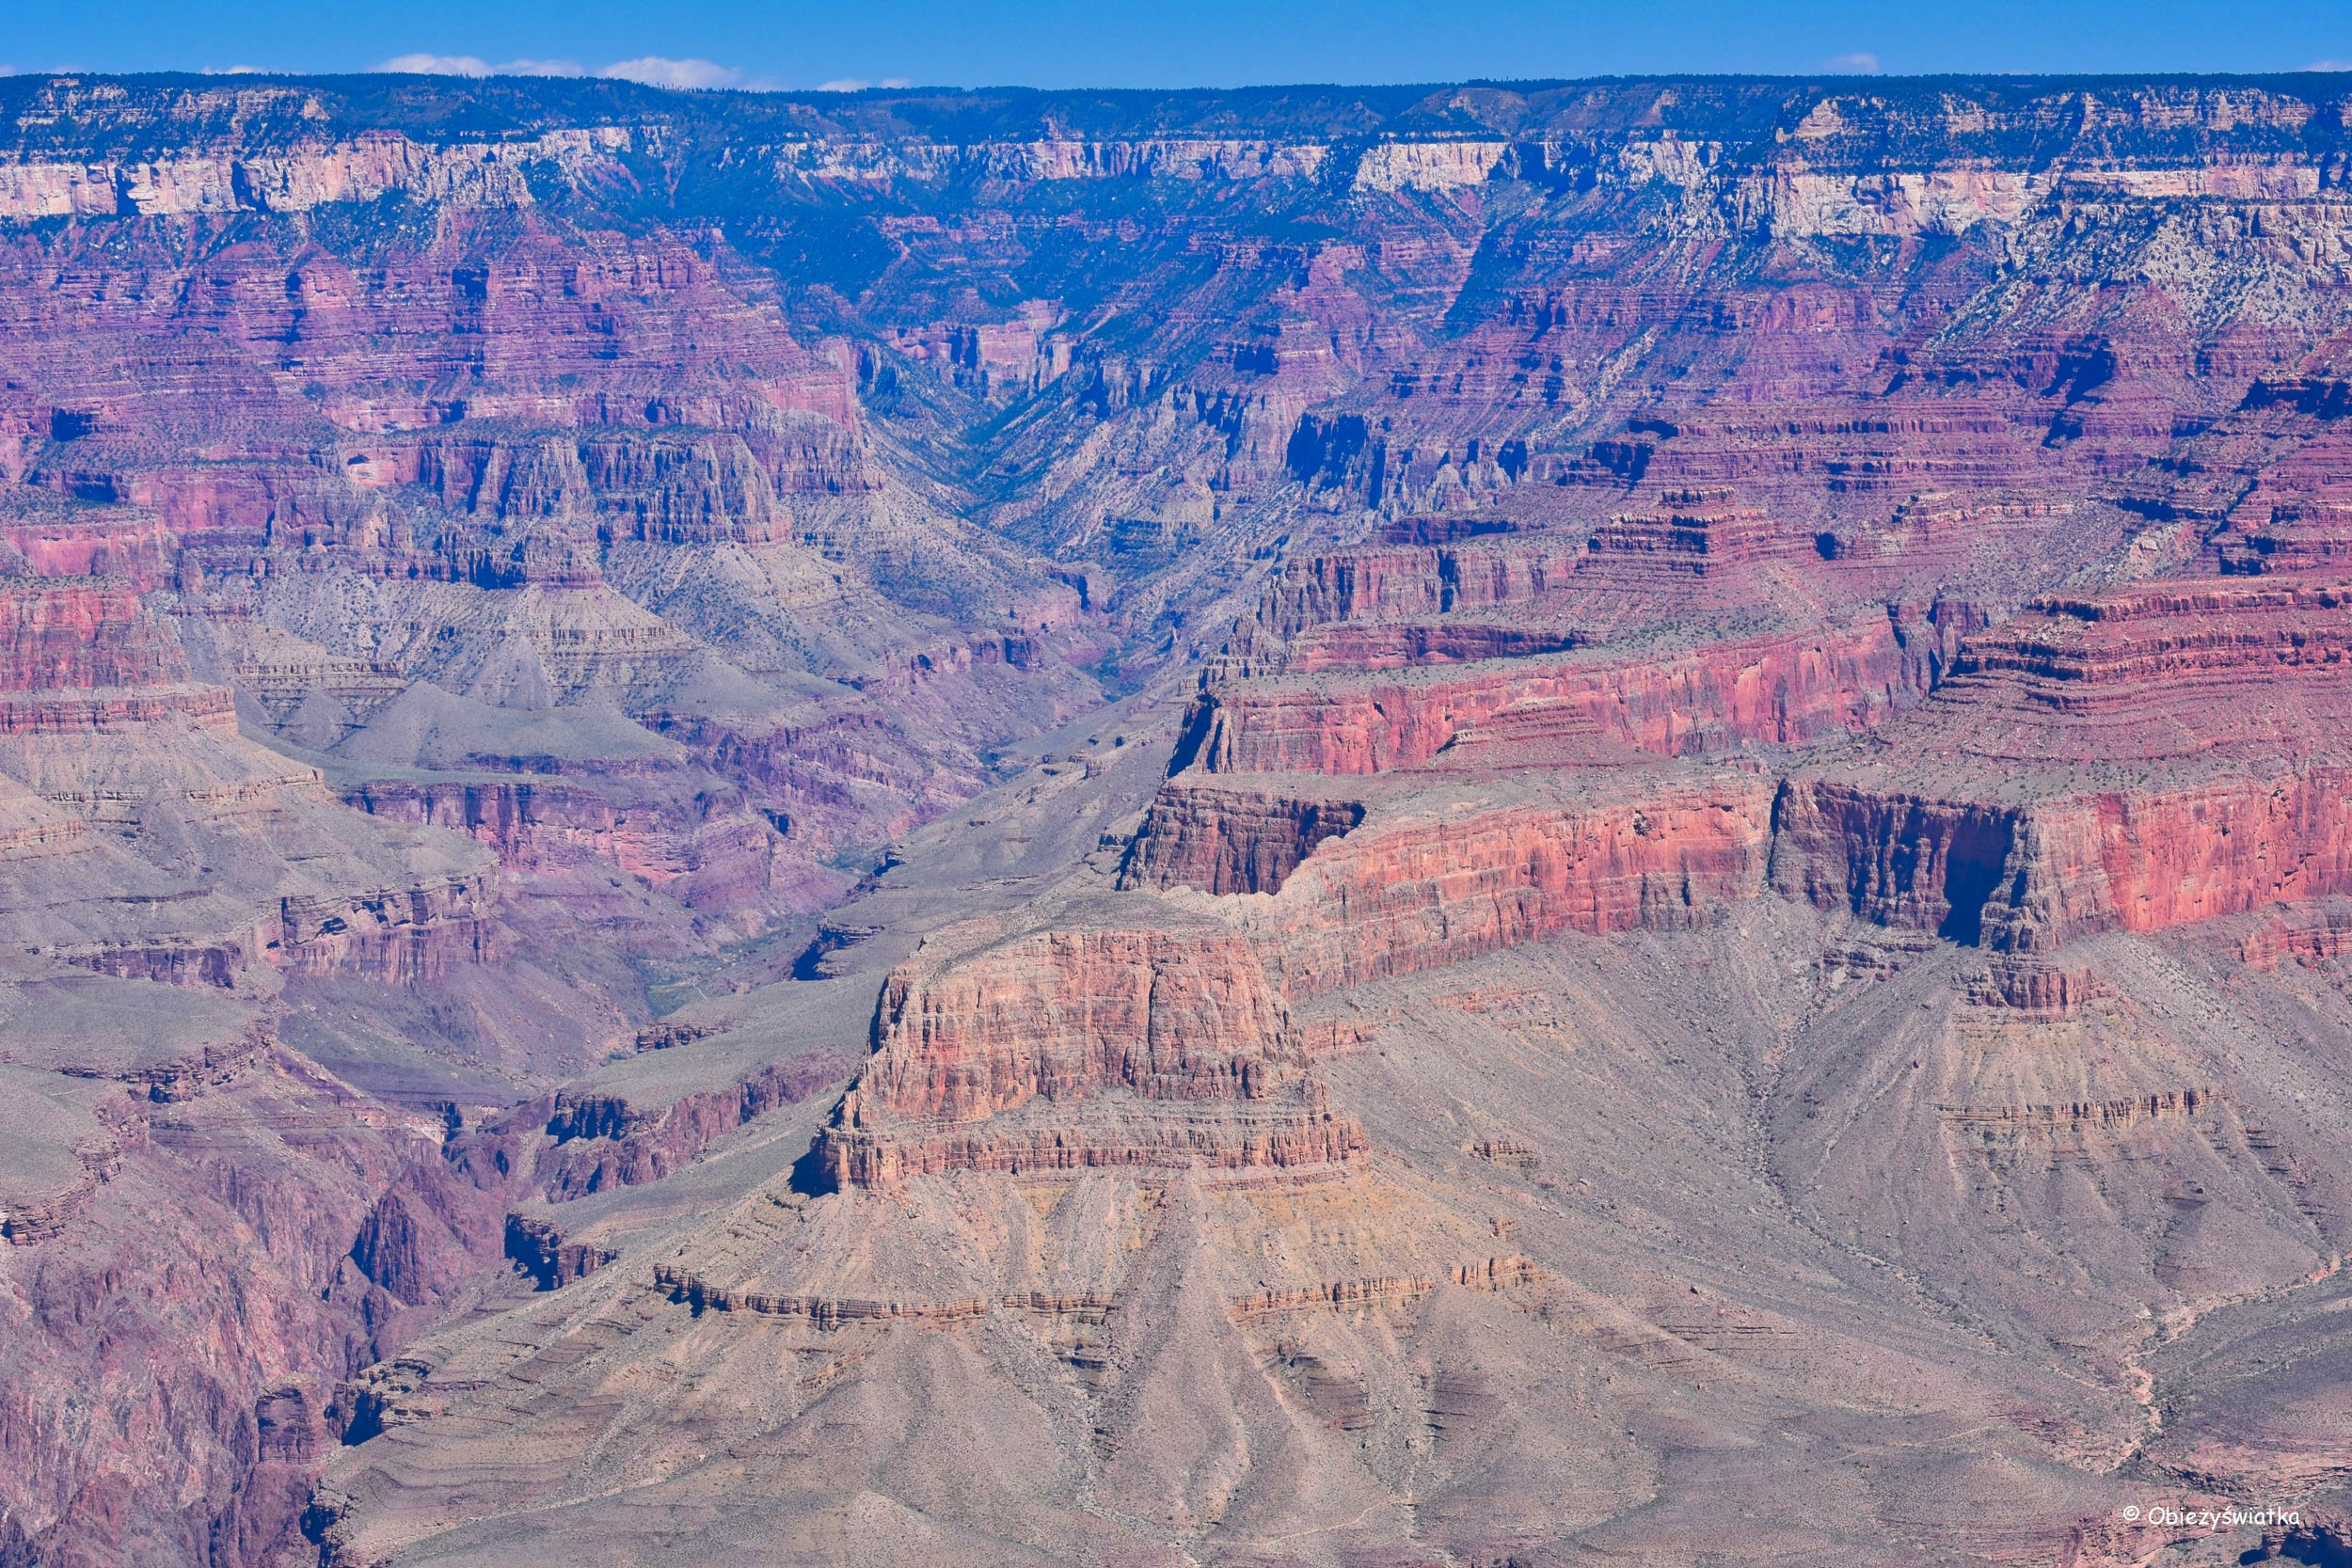 Grand Canyon National Park, Arizona, USA - panorama